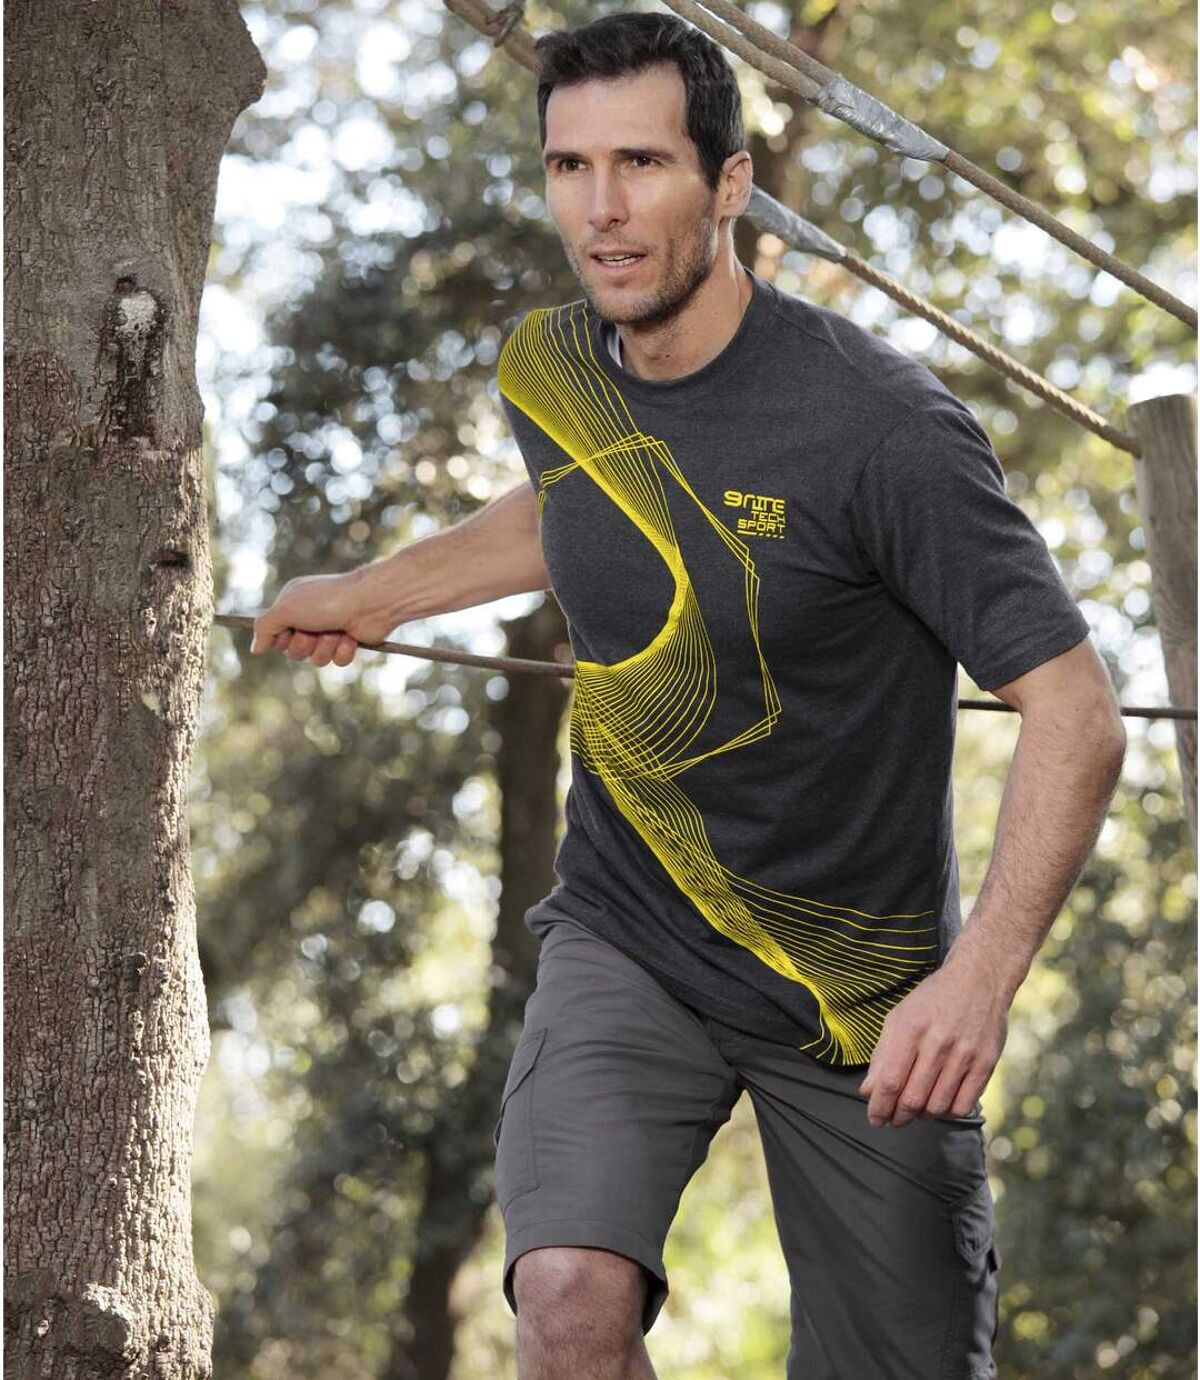 Pack of 2 Men's Sporty T-Shirts - Yellow Gray Atlas For Men